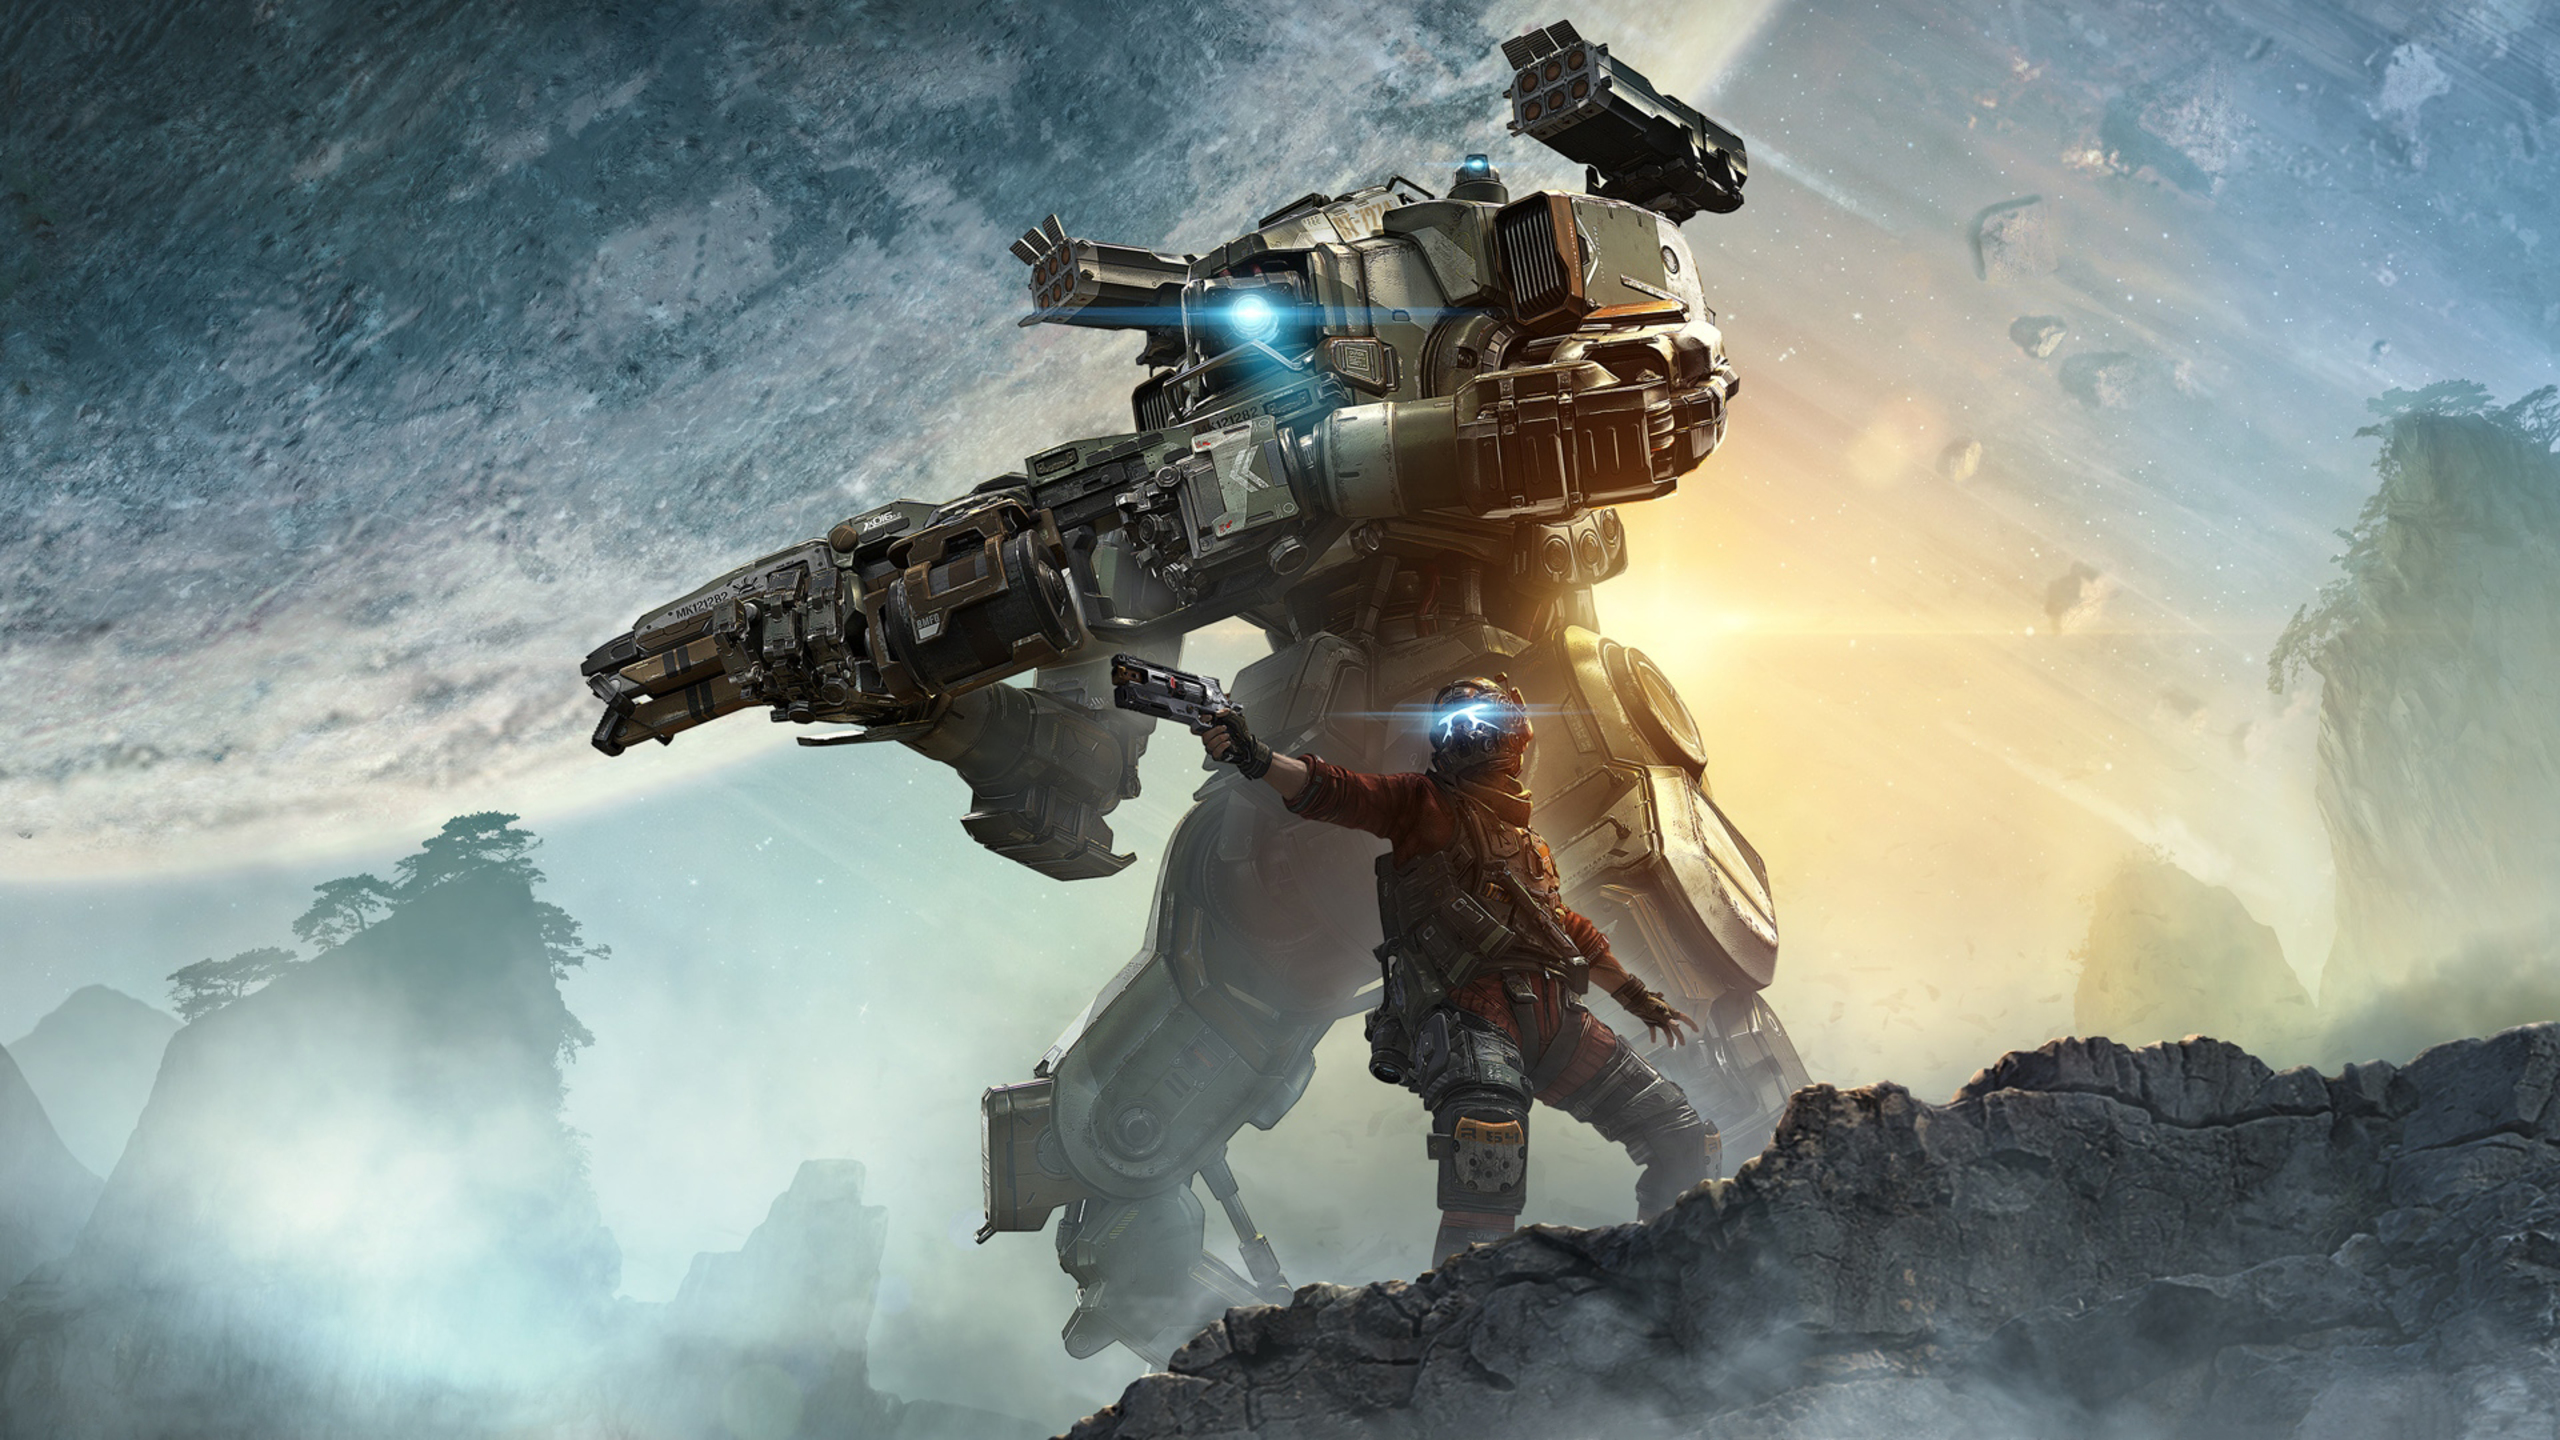 Download Titanfall 2 Colony Reborn Dlc 2017 HD 4k Wallpapers In ...